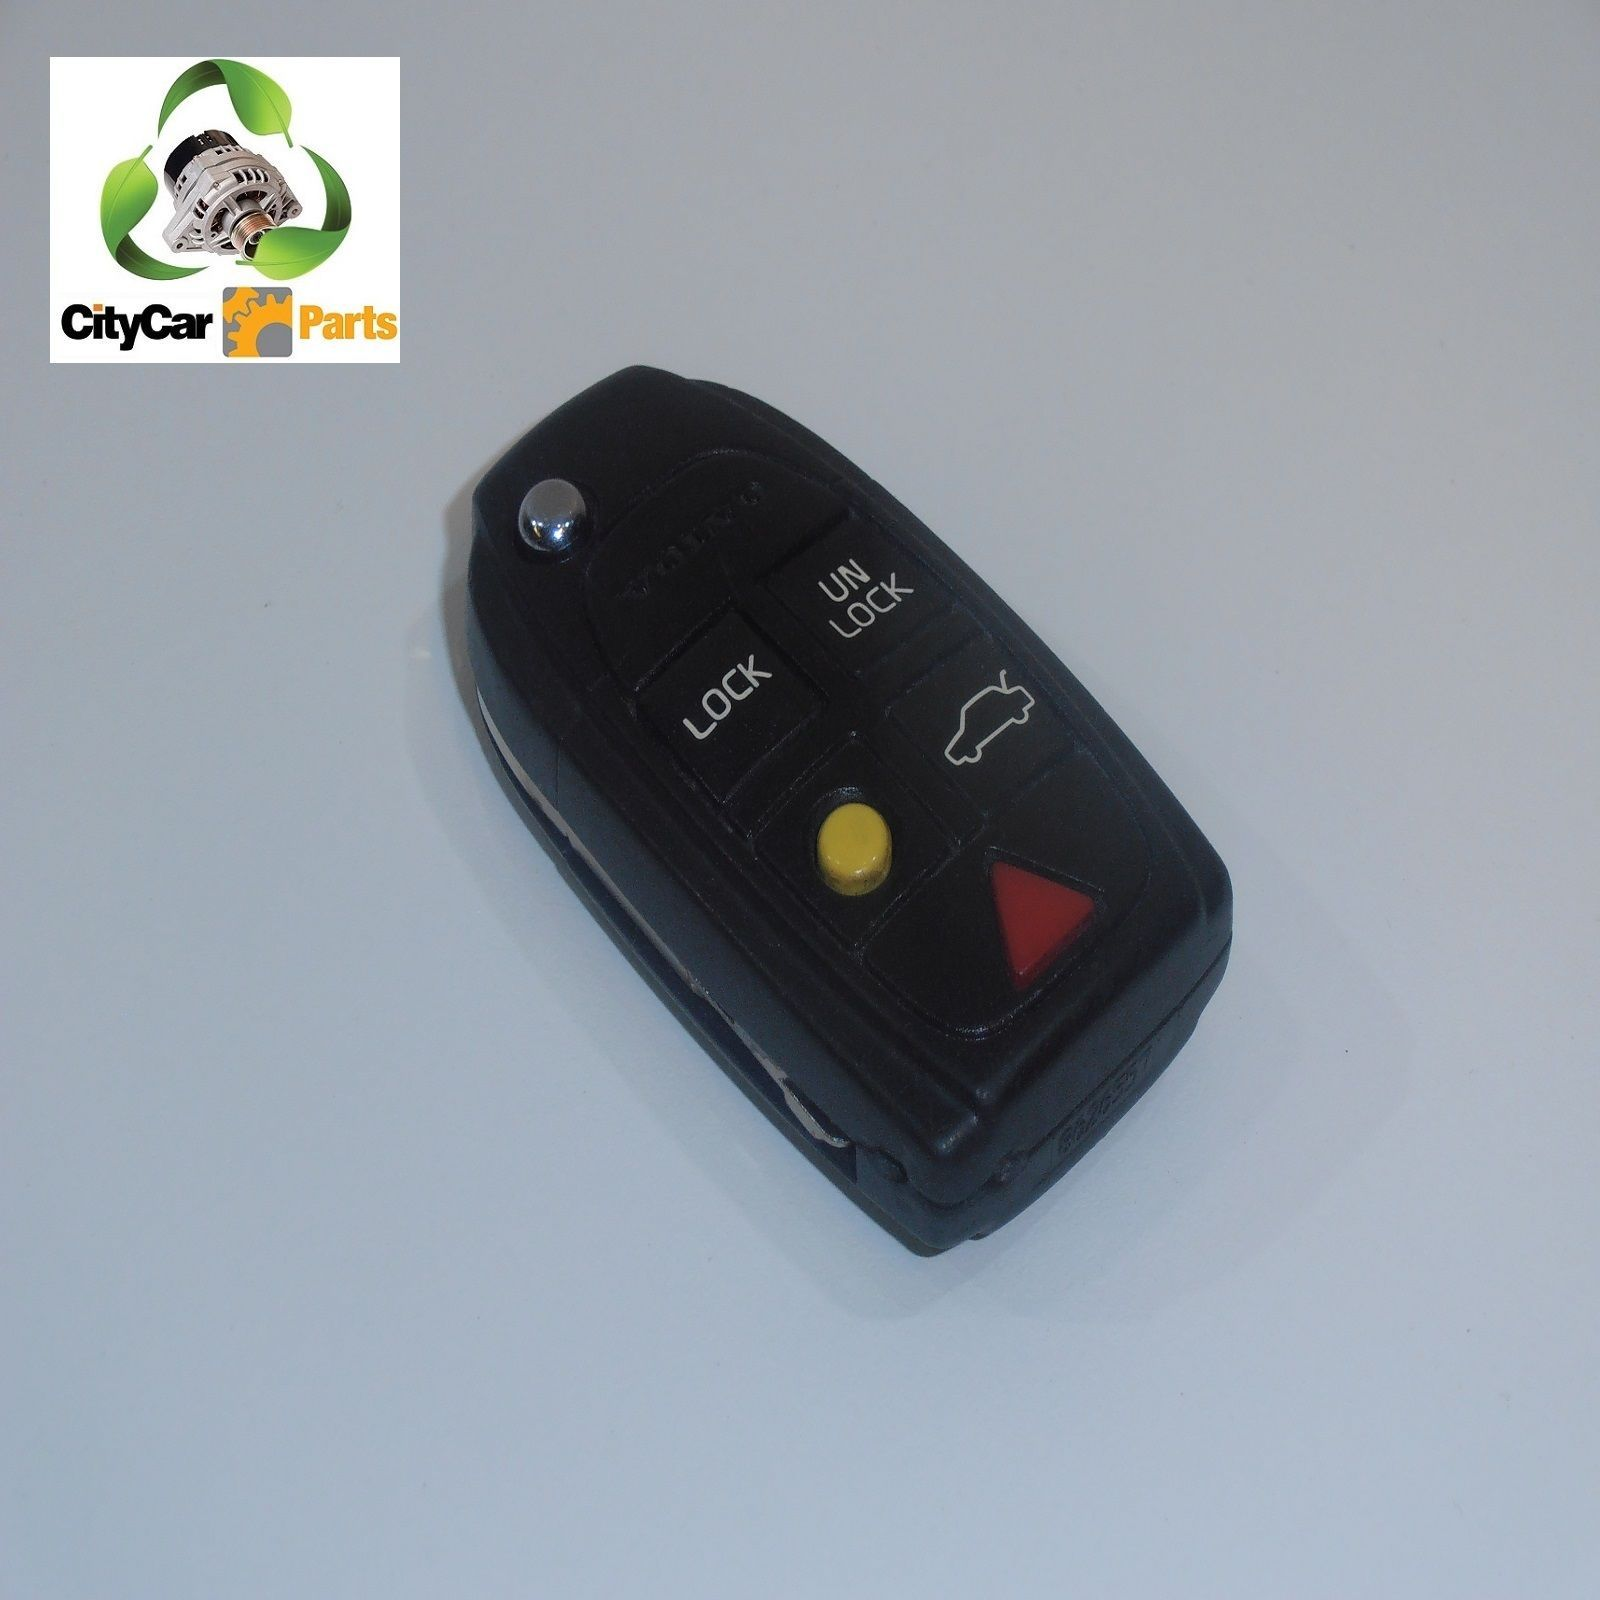 get the how original car volvo g without key gds a fob to